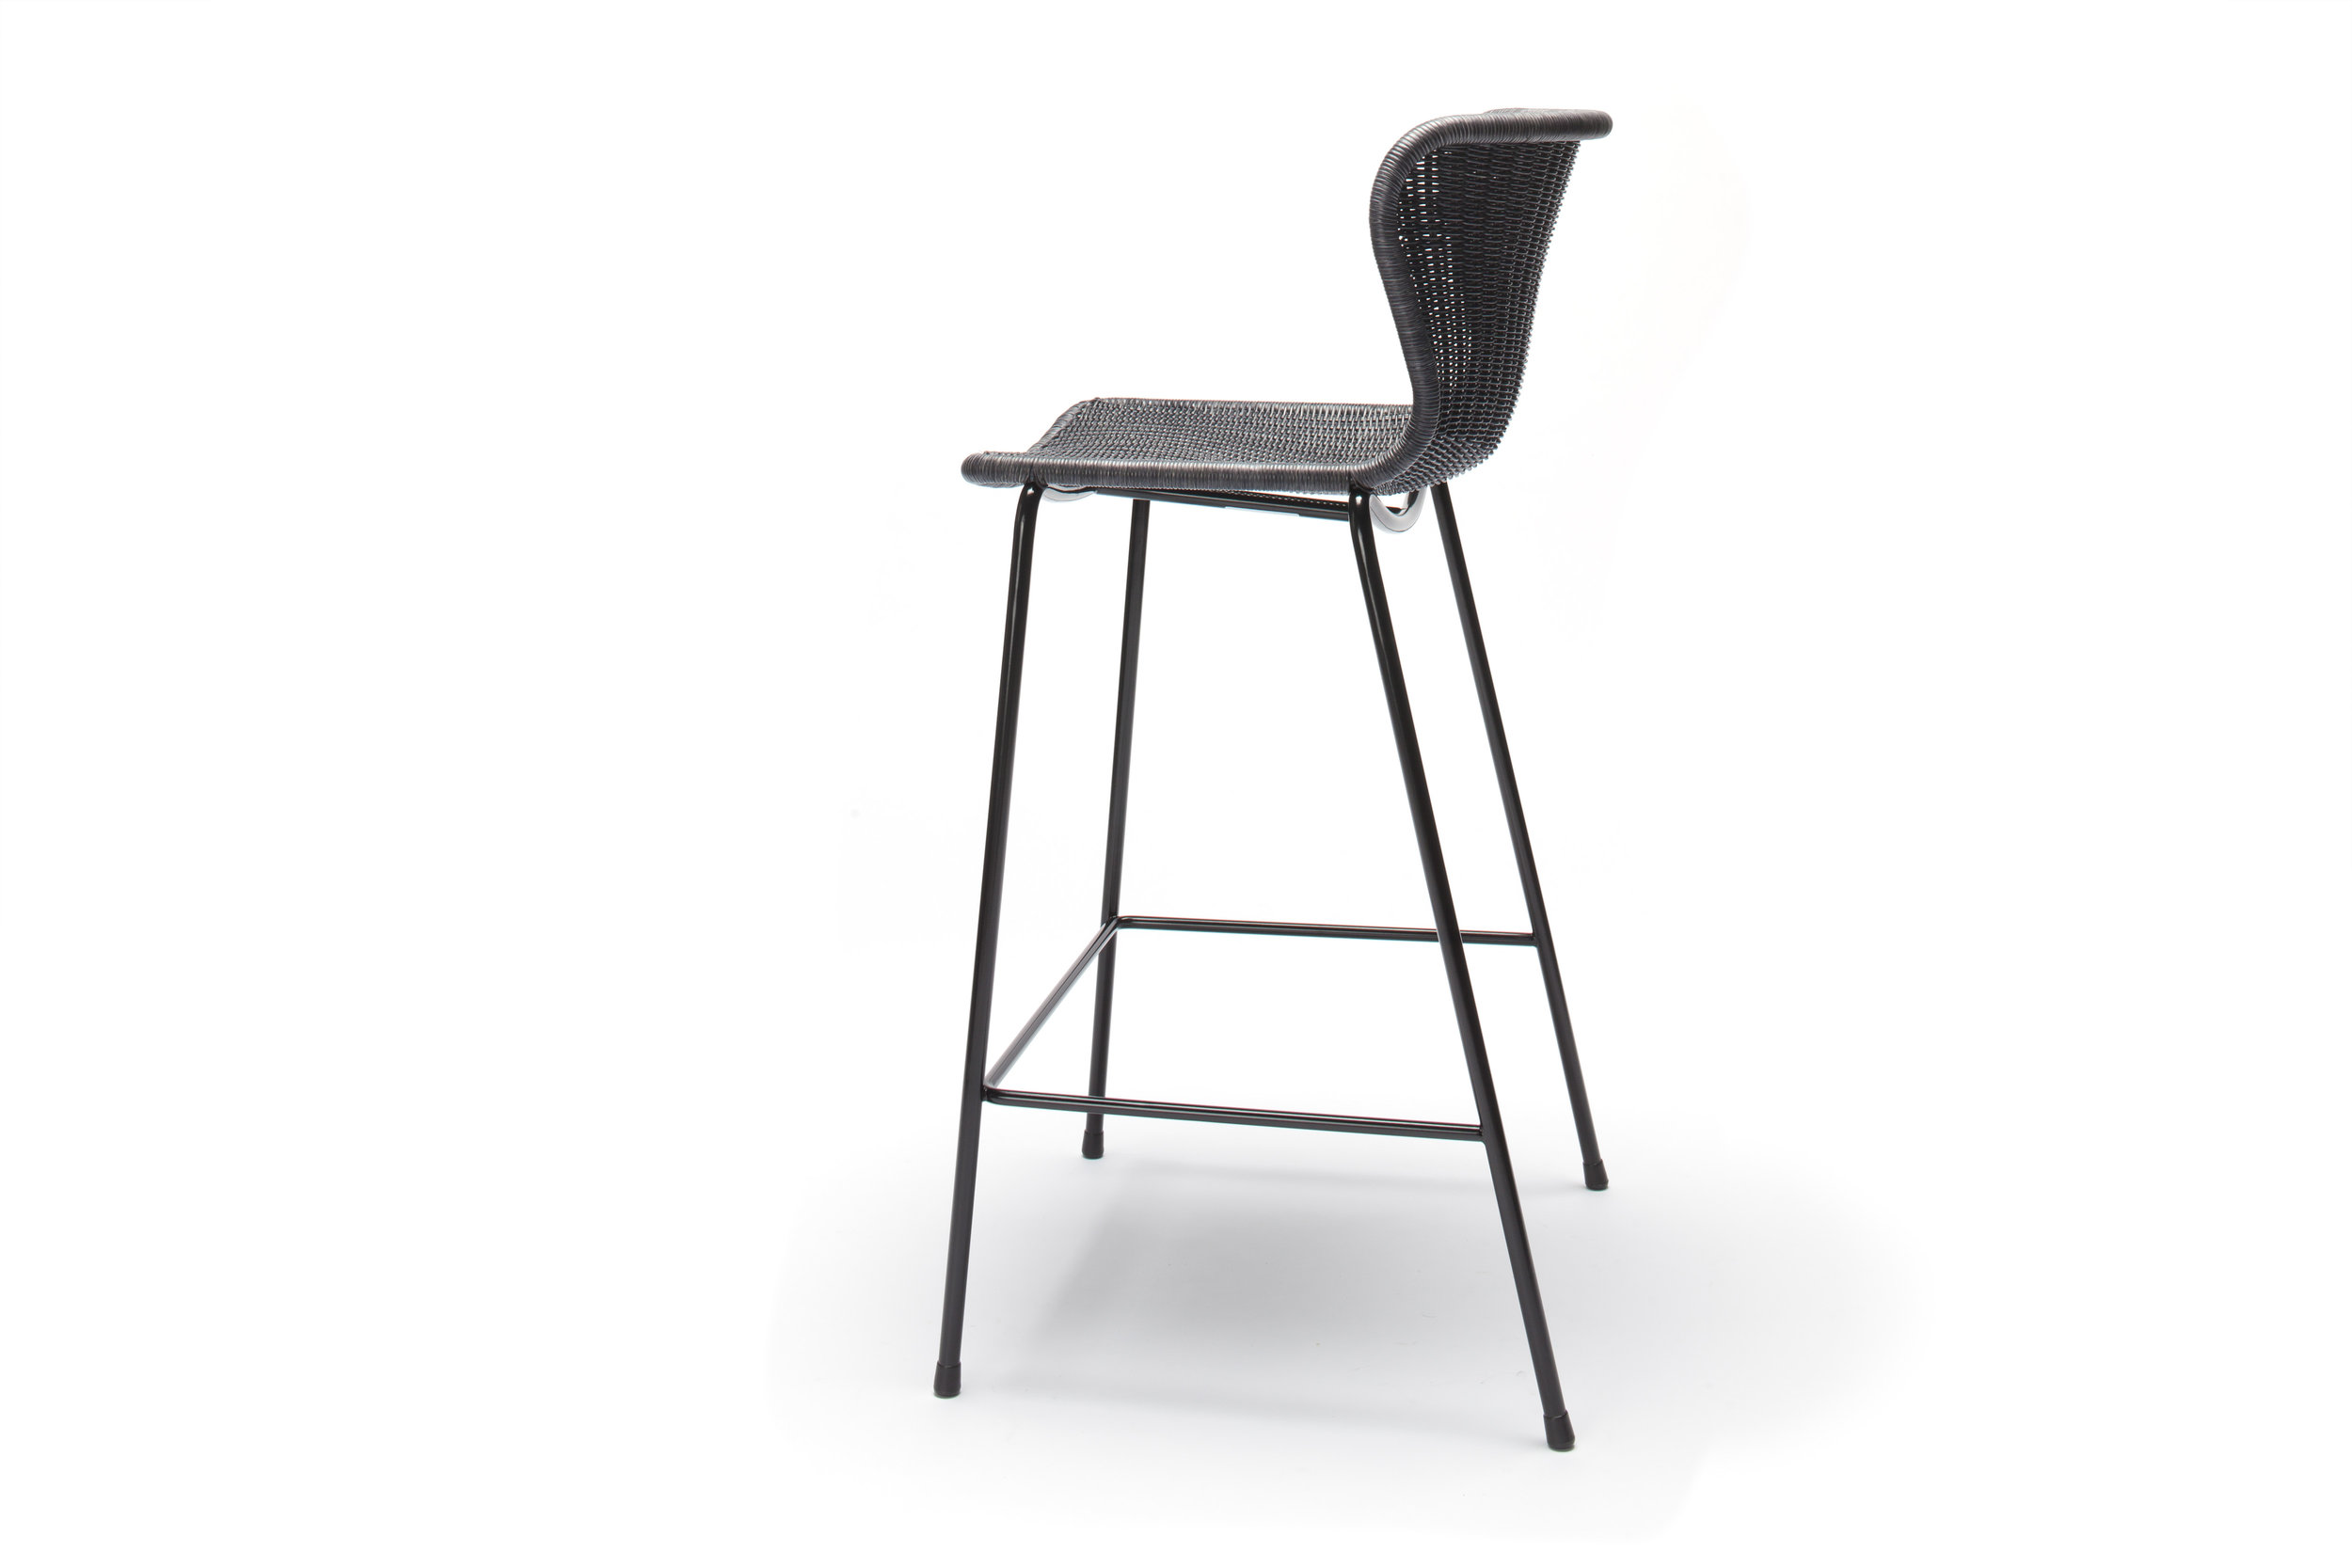 Indoor C603 Stool - Charcoal Rattan